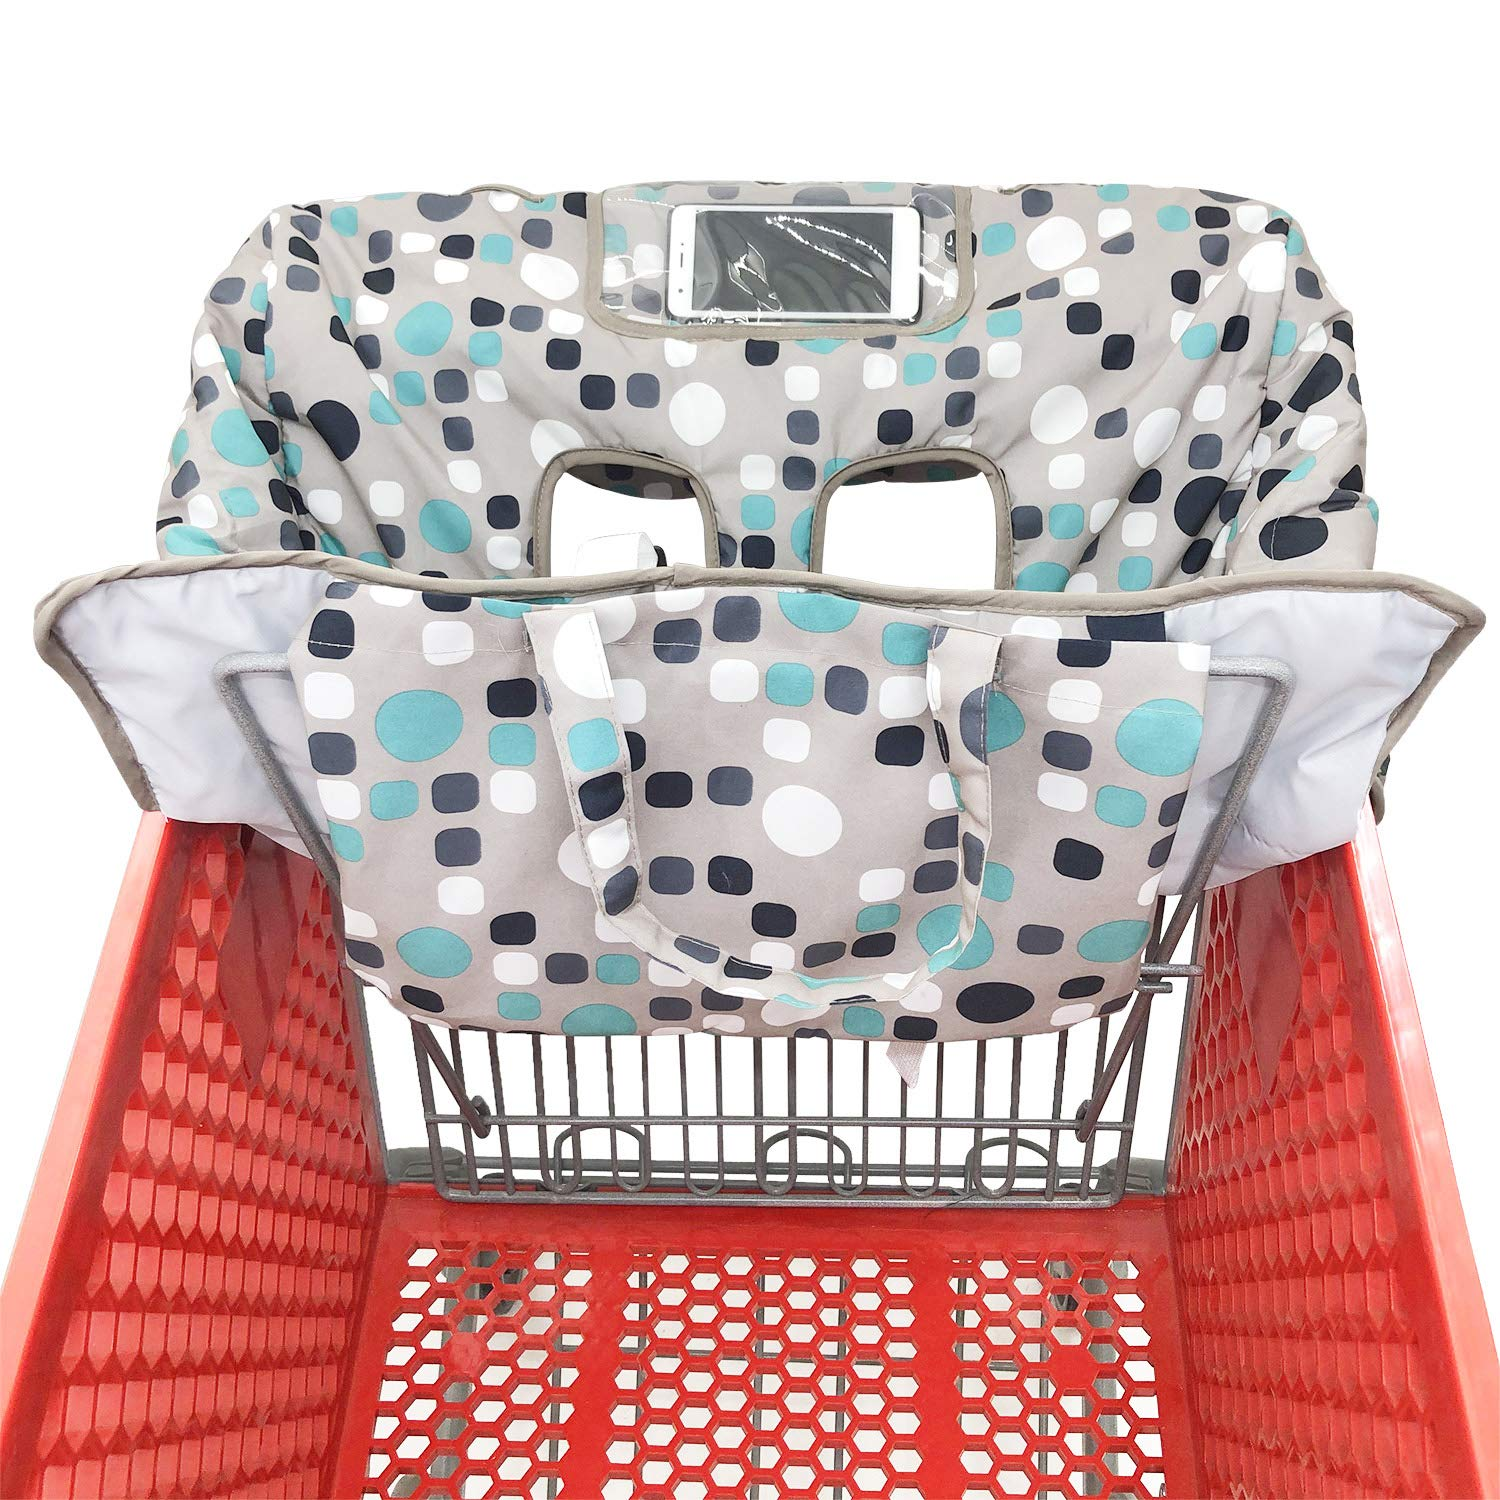 Portable 2-in-1 Grocery Cart Seat Cover and Baby Highchair Cover Black Chevron